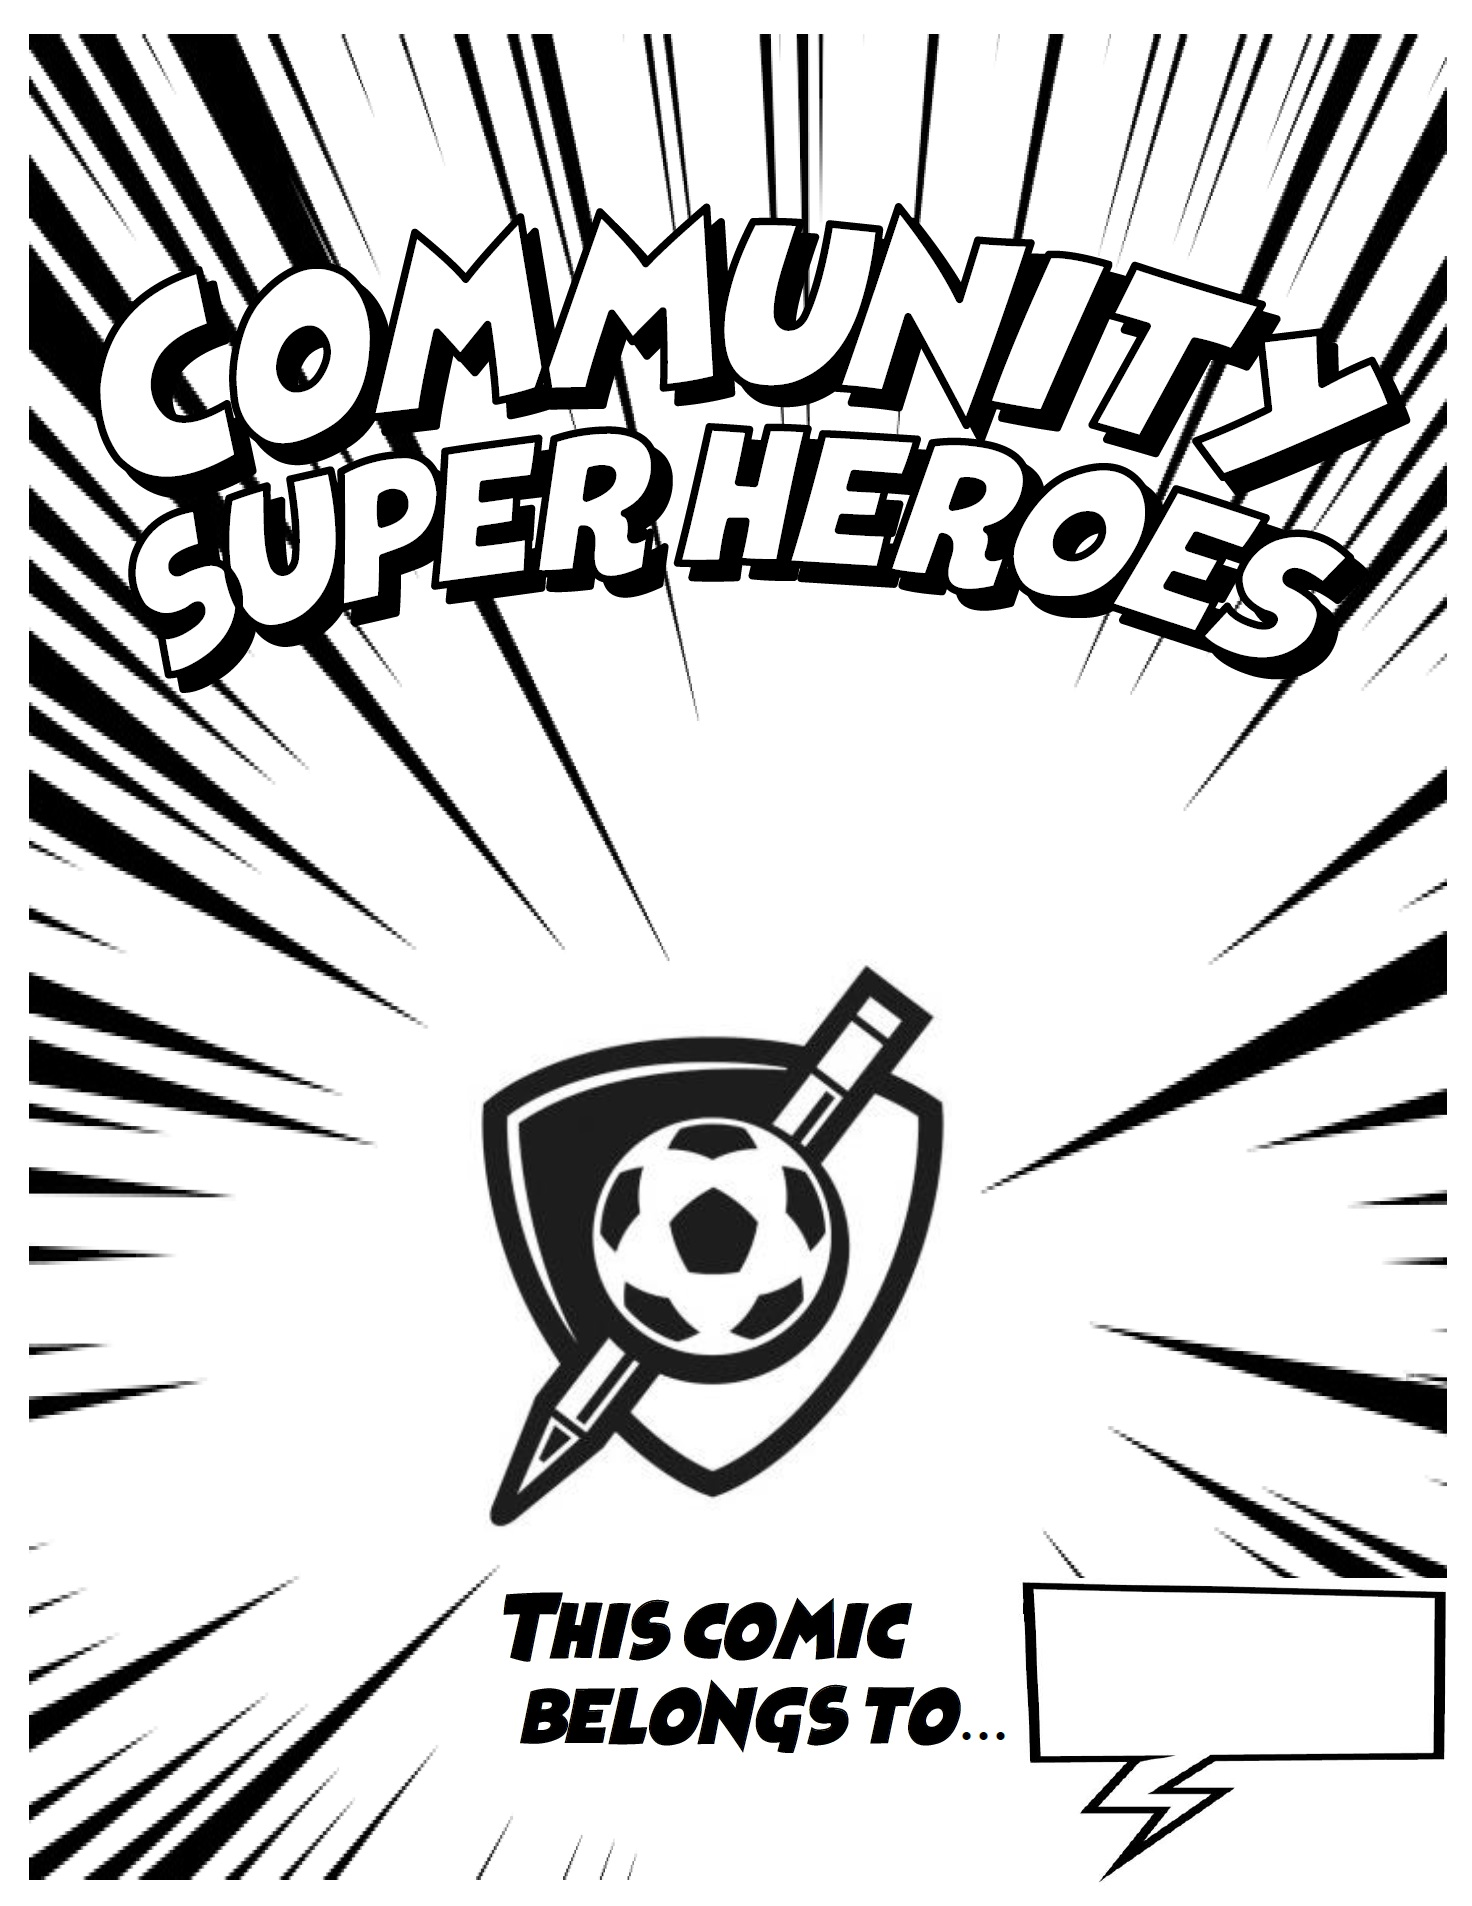 Check out Community Super Heroes comic-making workbook (1st-5th Grade)